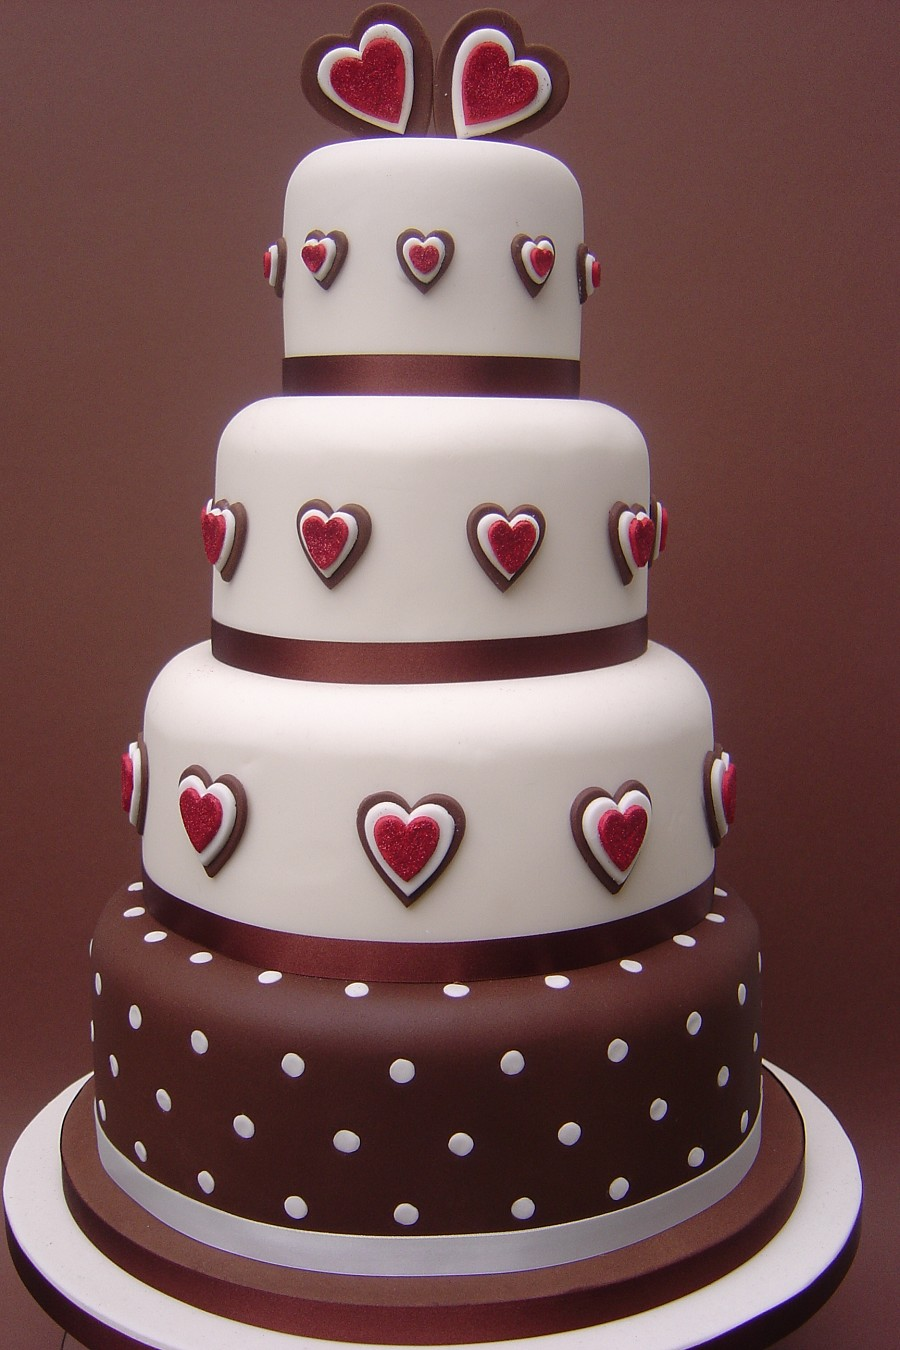 Cake Designs And Images : Wedding cake Ideas collection